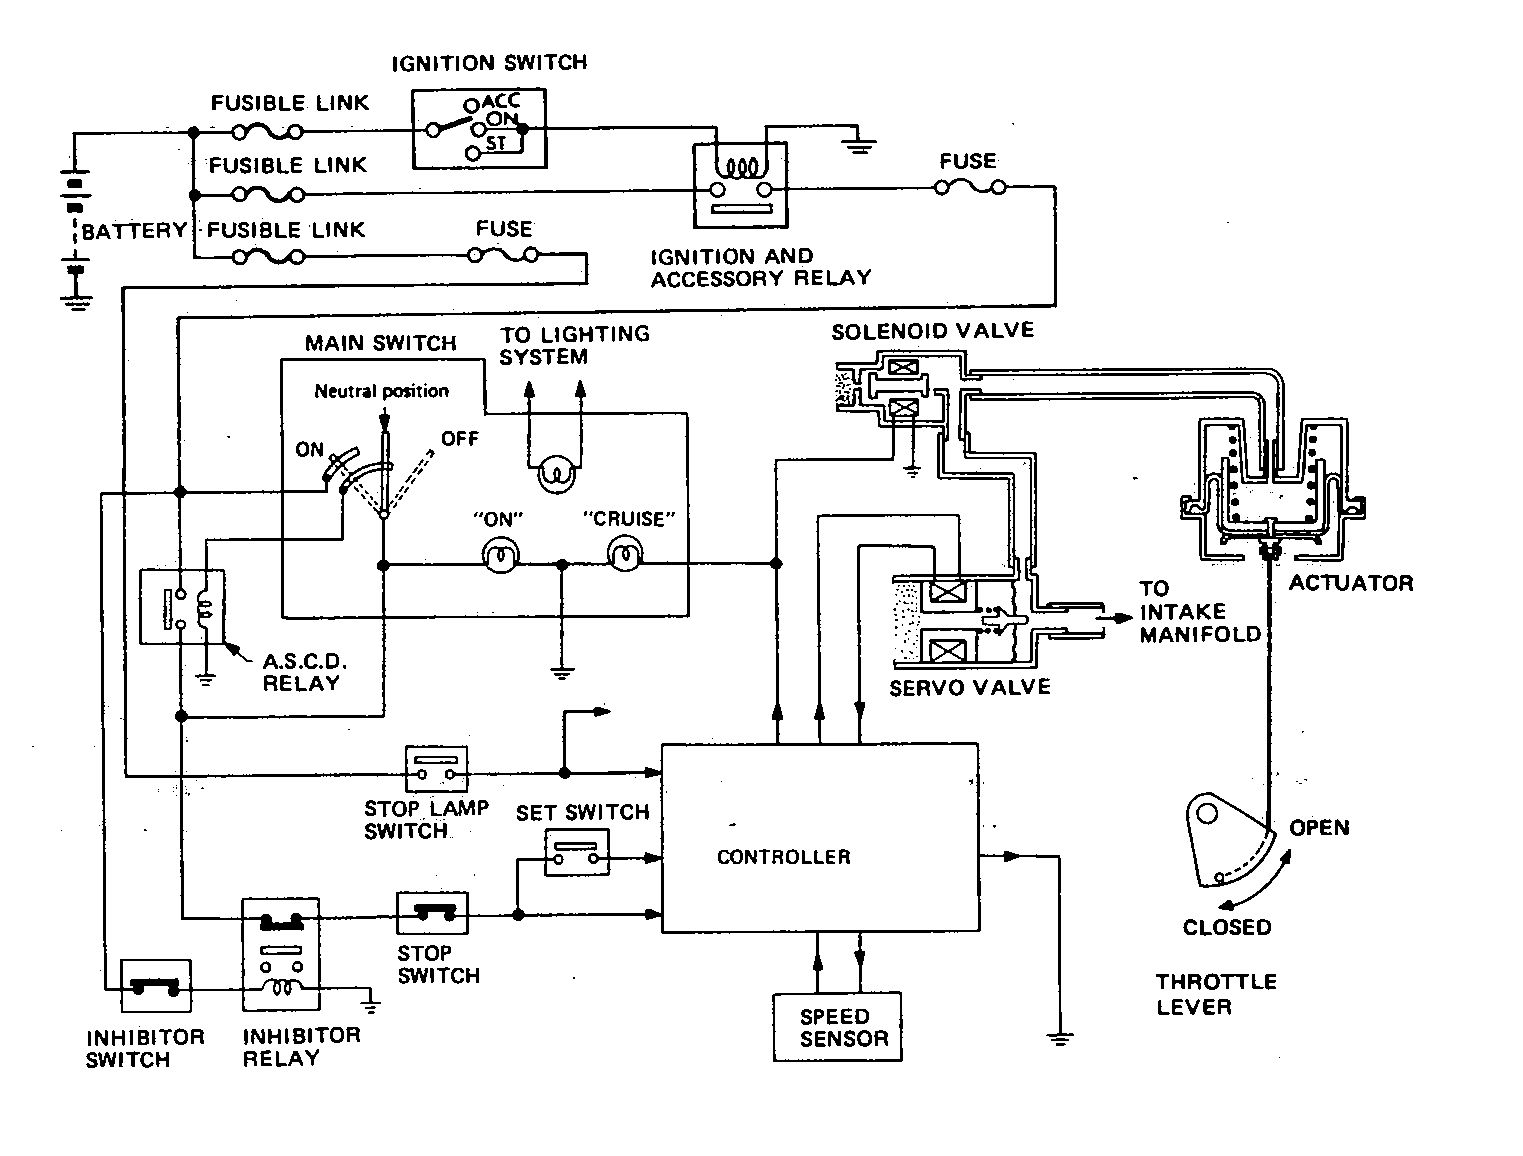 hight resolution of nissan cruise control diagram wiring diagram advance nissan maxima cruise control wiring diagram nissan cruise control diagram